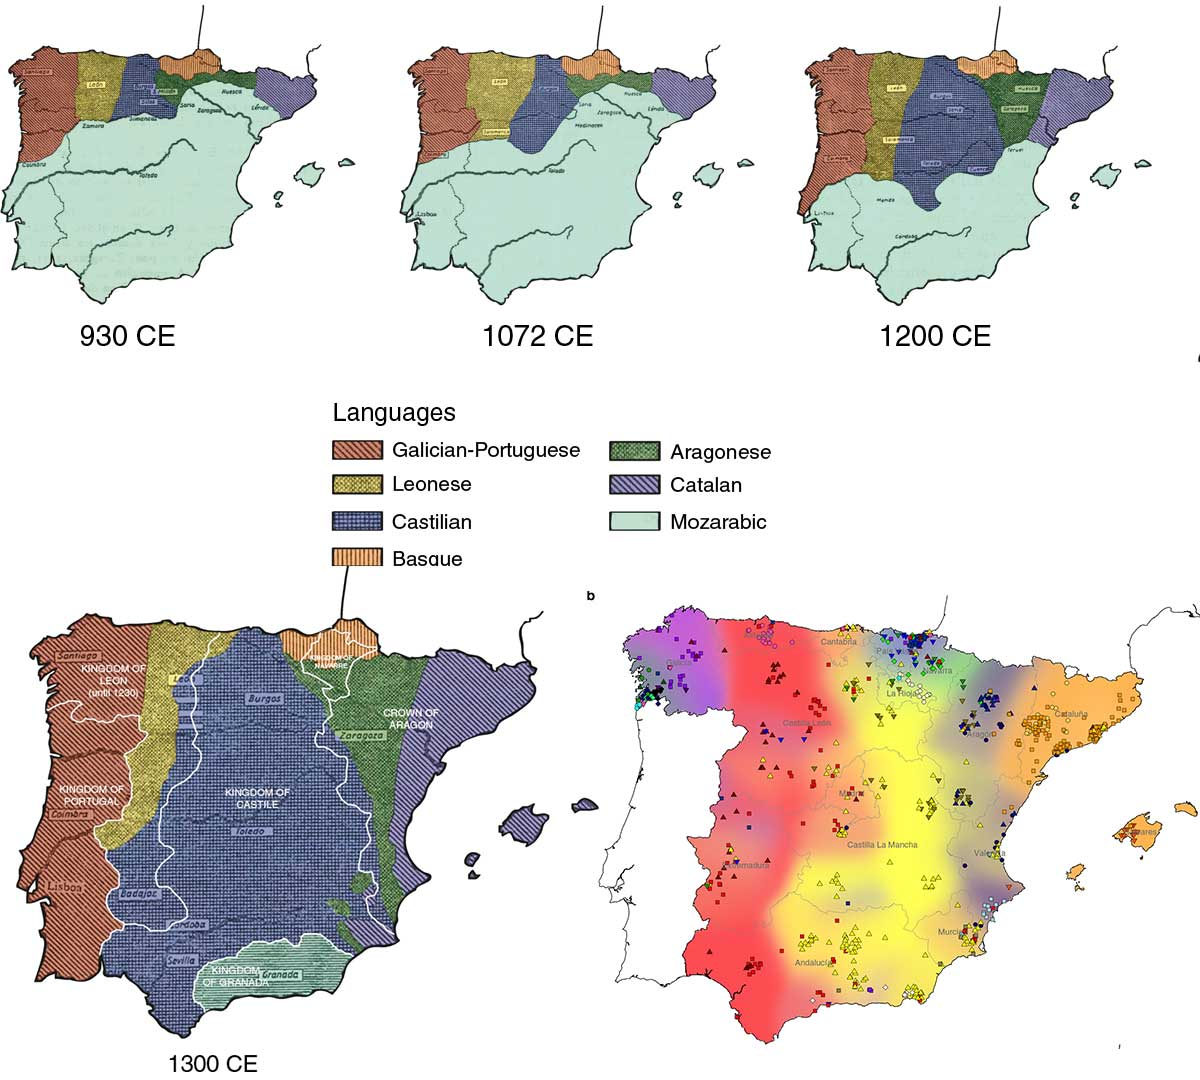 iberian-medieval-kingdoms-expansion-population-genomics